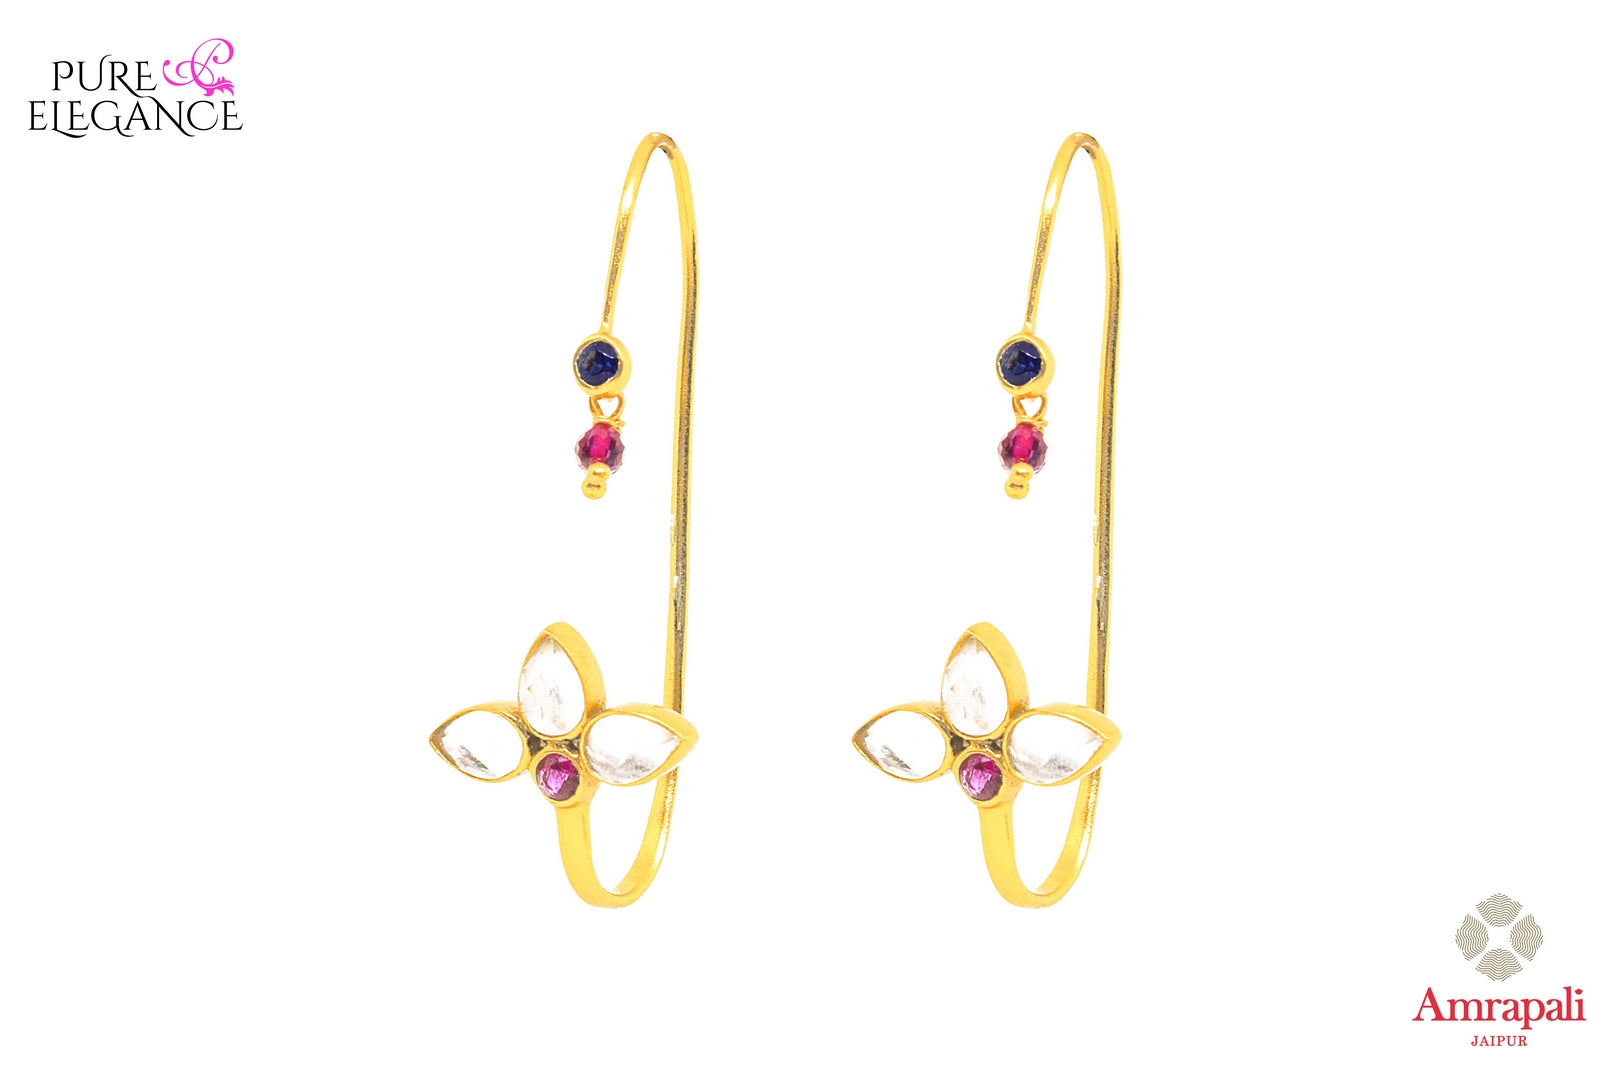 Buy silver gold plated hoop shape glass earrings online in USA from Amrapali. If you are looking for Indian silver gold plated jewelry in USA, then Pure Elegance Indian fashion store is the place for you. A whole range of exquisite of traditional Indian jewellery is waiting for you on our shelves, you can also opt to shop online.-front view